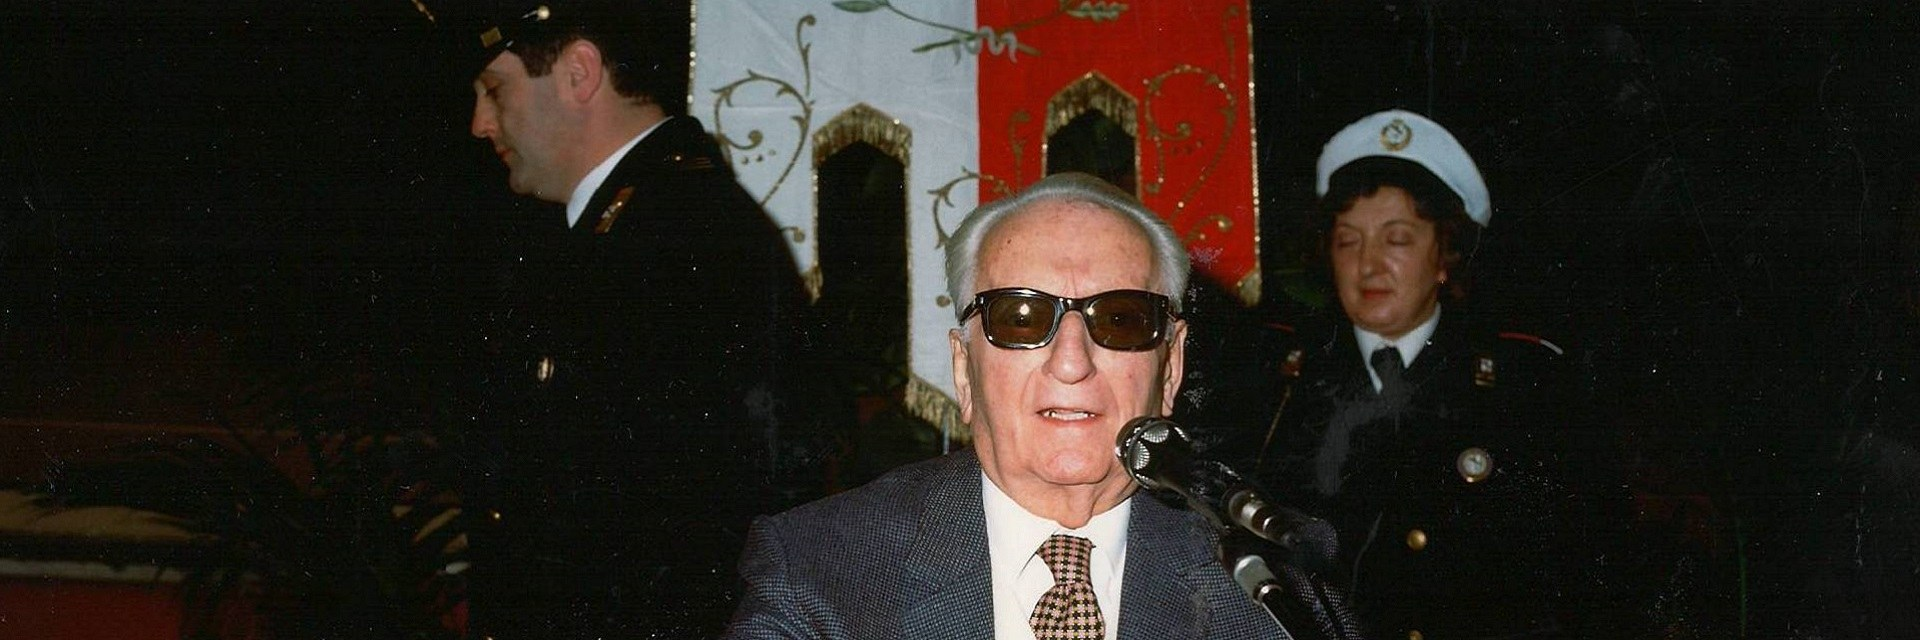 Enzo Ferrari, a citizen of Fiorano